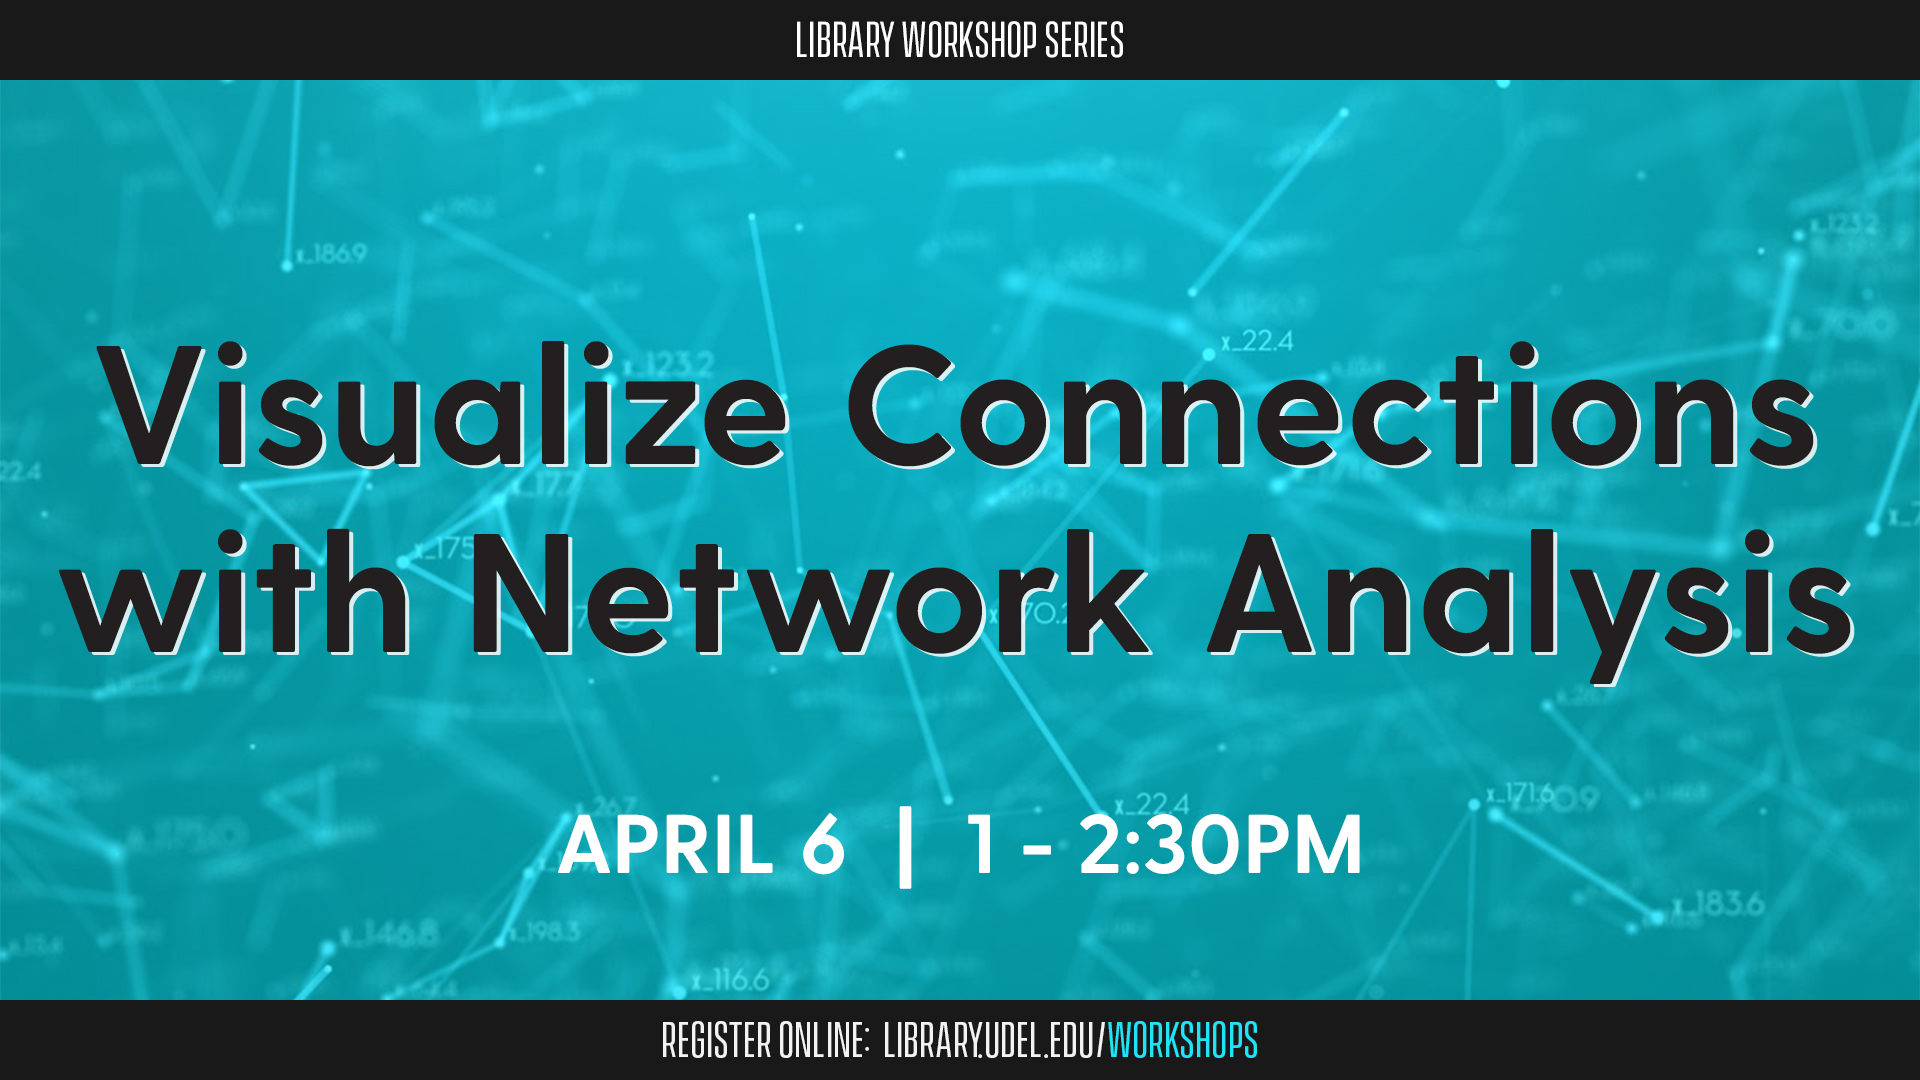 Promotional image for Visualize Connections with Network Analysis